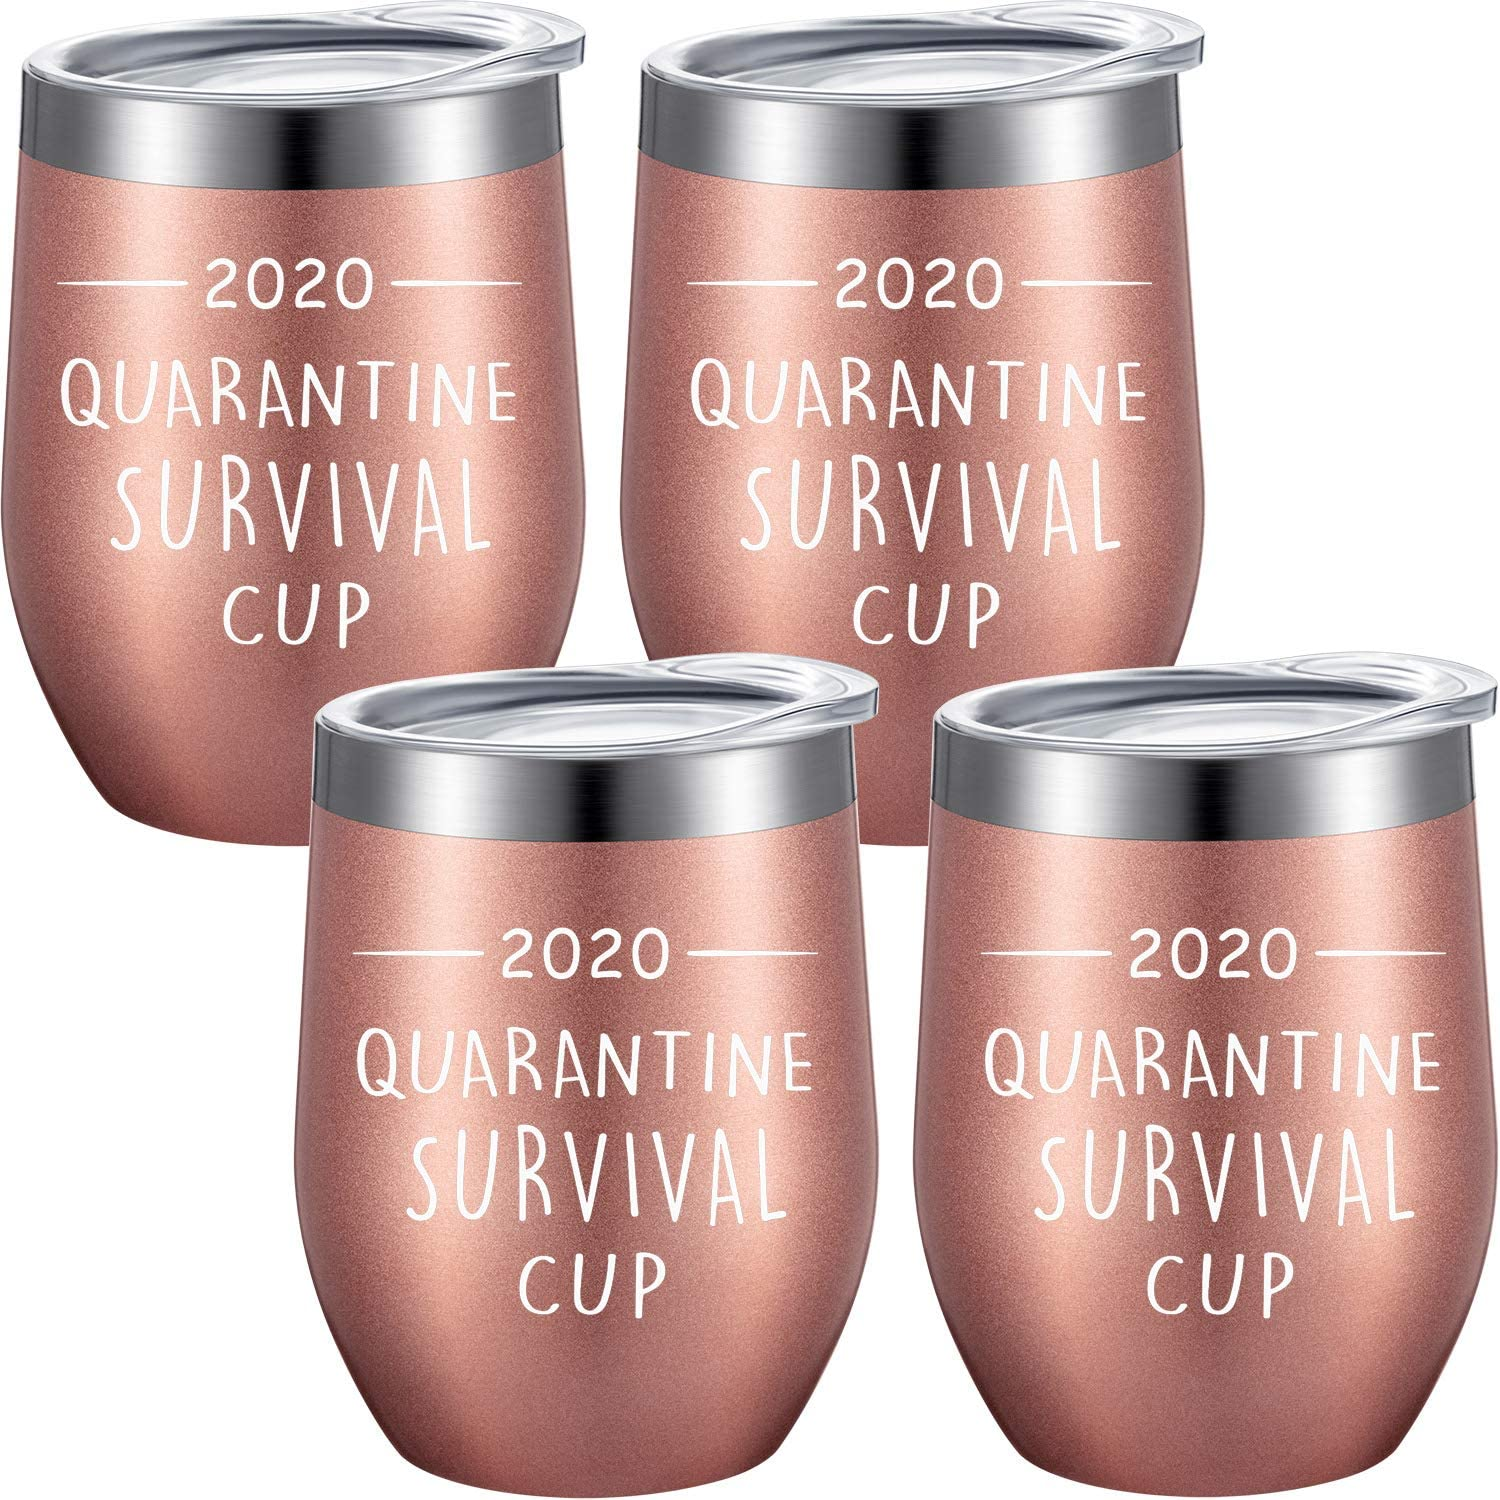 4 Pieces Novelty Quarantine Coffee Cups, 2020 Quarantine Survival Cup, Funny Stay at Home Gift for Families, Friends, Coworkers, Colleagues, 12 oz Vacuum Insulated Wine Tumbler with Straw and Brush